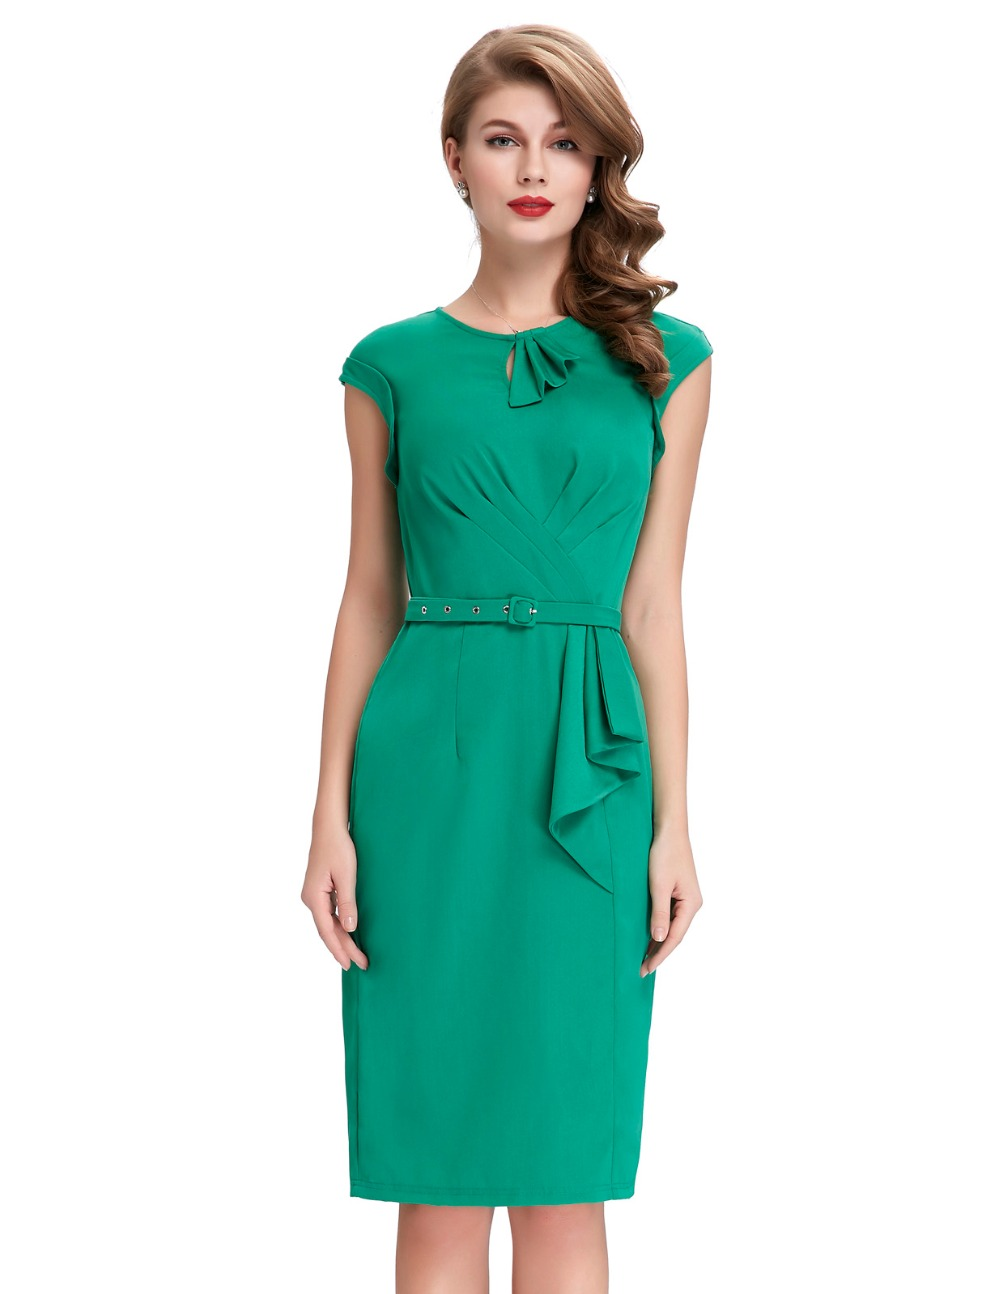 Short prom dresses vintage green pencil dress robe femme belle poque short prom dresses vintage green pencil dress robe femme belle poque cheap 50s style plus size retro bodycon sheath formal gowns in prom dresses from ombrellifo Gallery